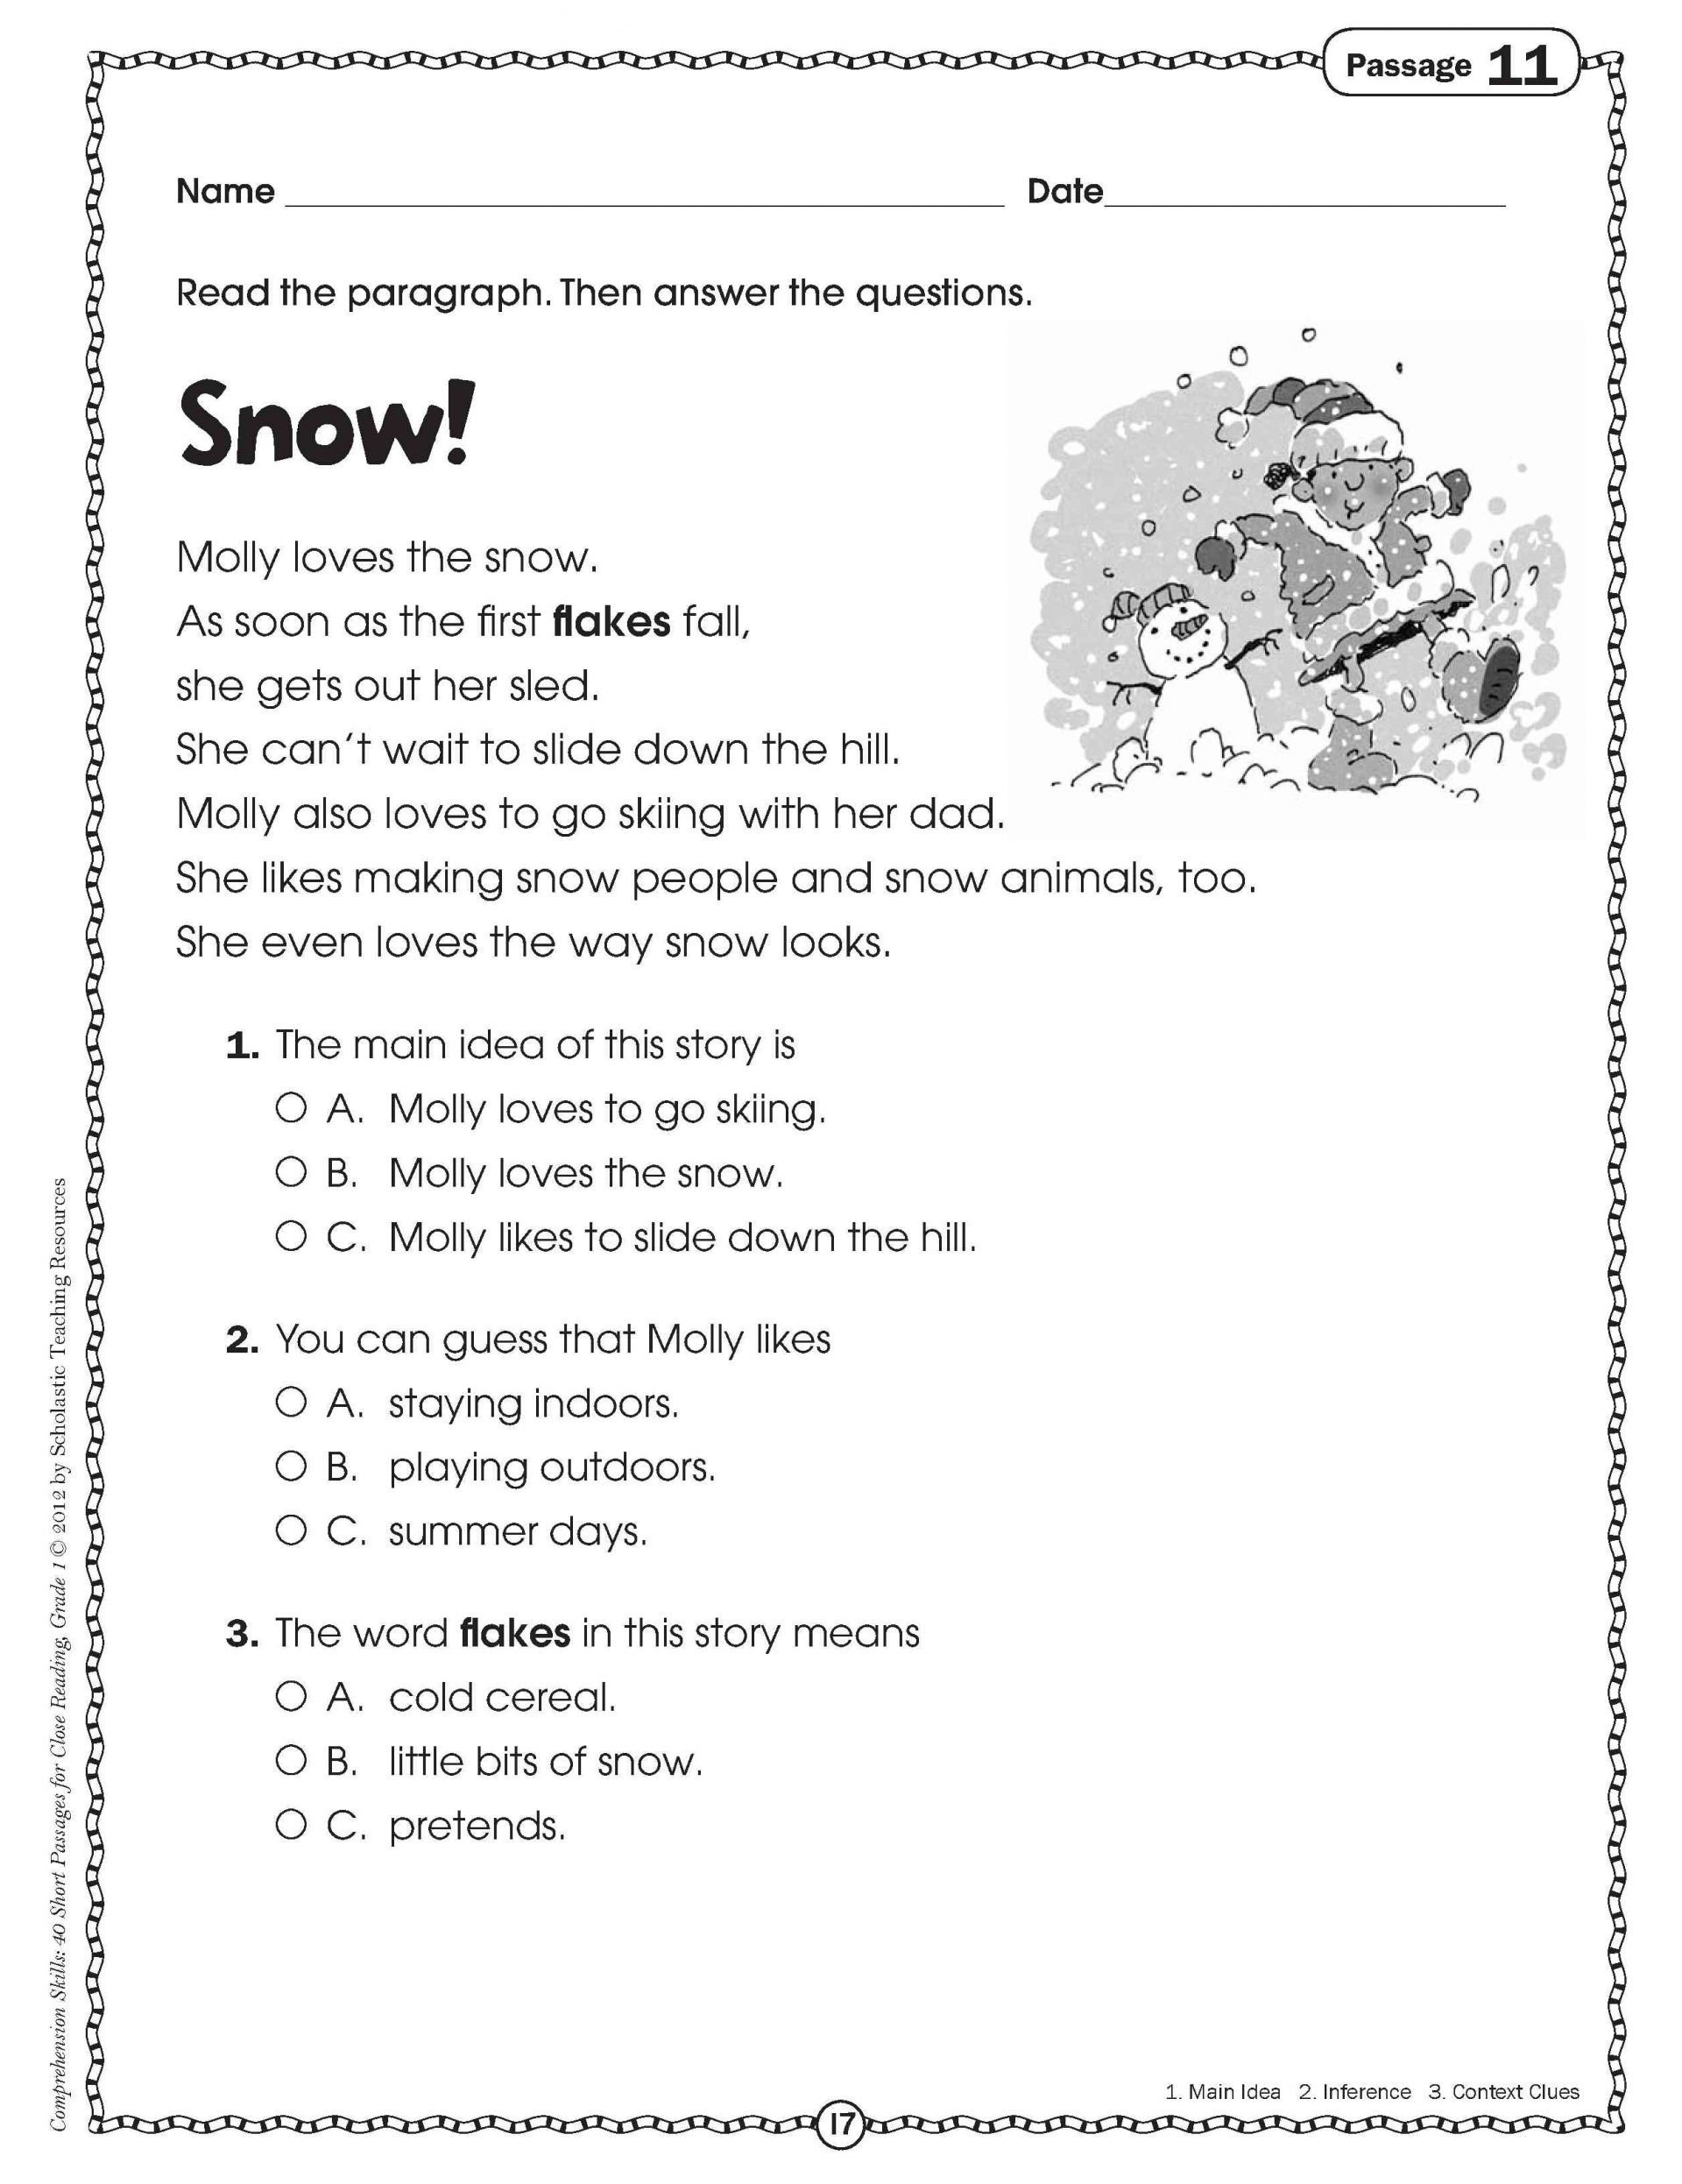 Worksheet Free Rounding Worksheets Adjectives For Grade With Intended For Comprehension Worksheets For Grade 1 Free